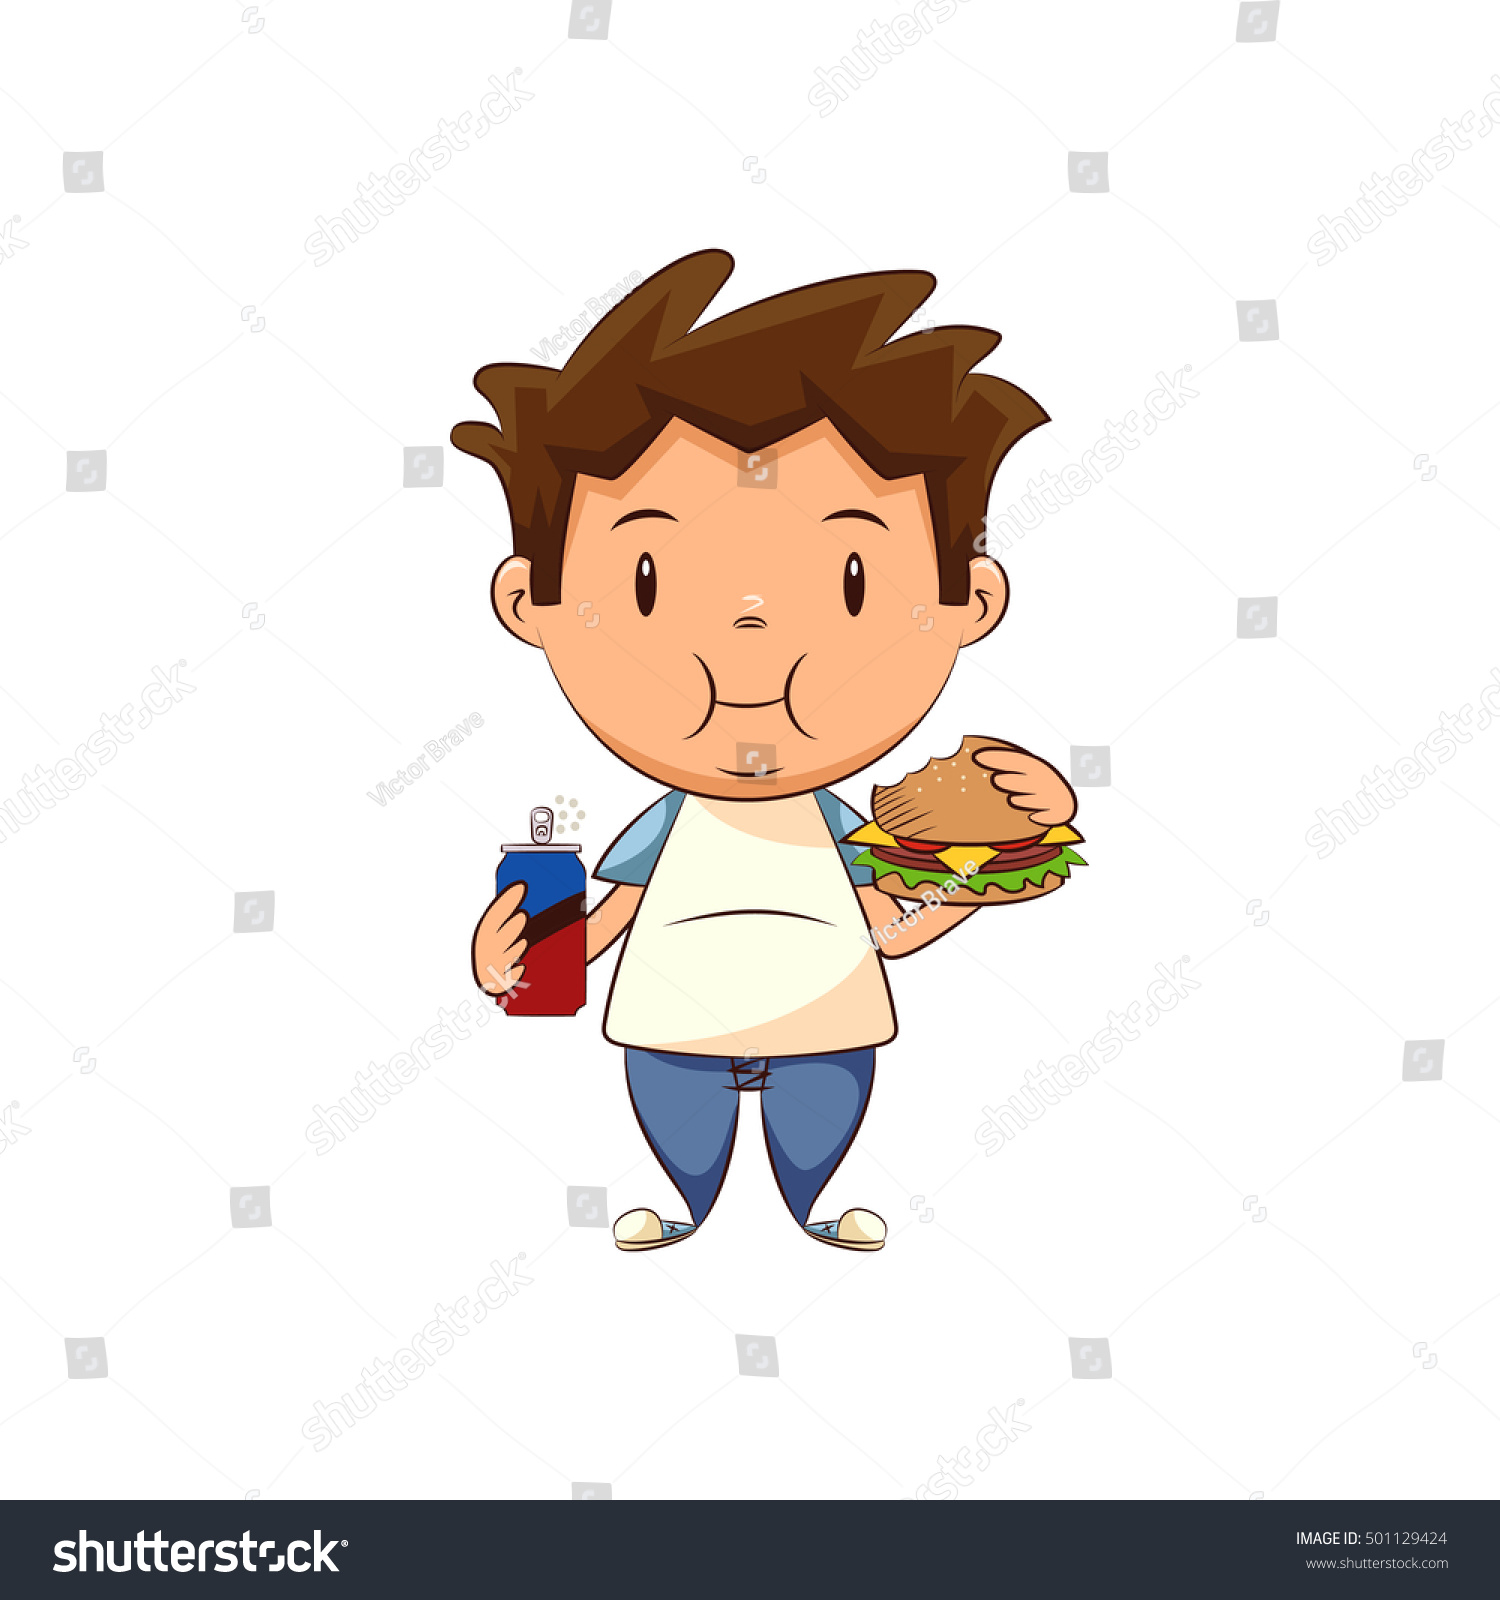 illustration essay on child obesity A lot of children in north america suffer from obesity and weight problems find out more about this serious issue from this great essay example.